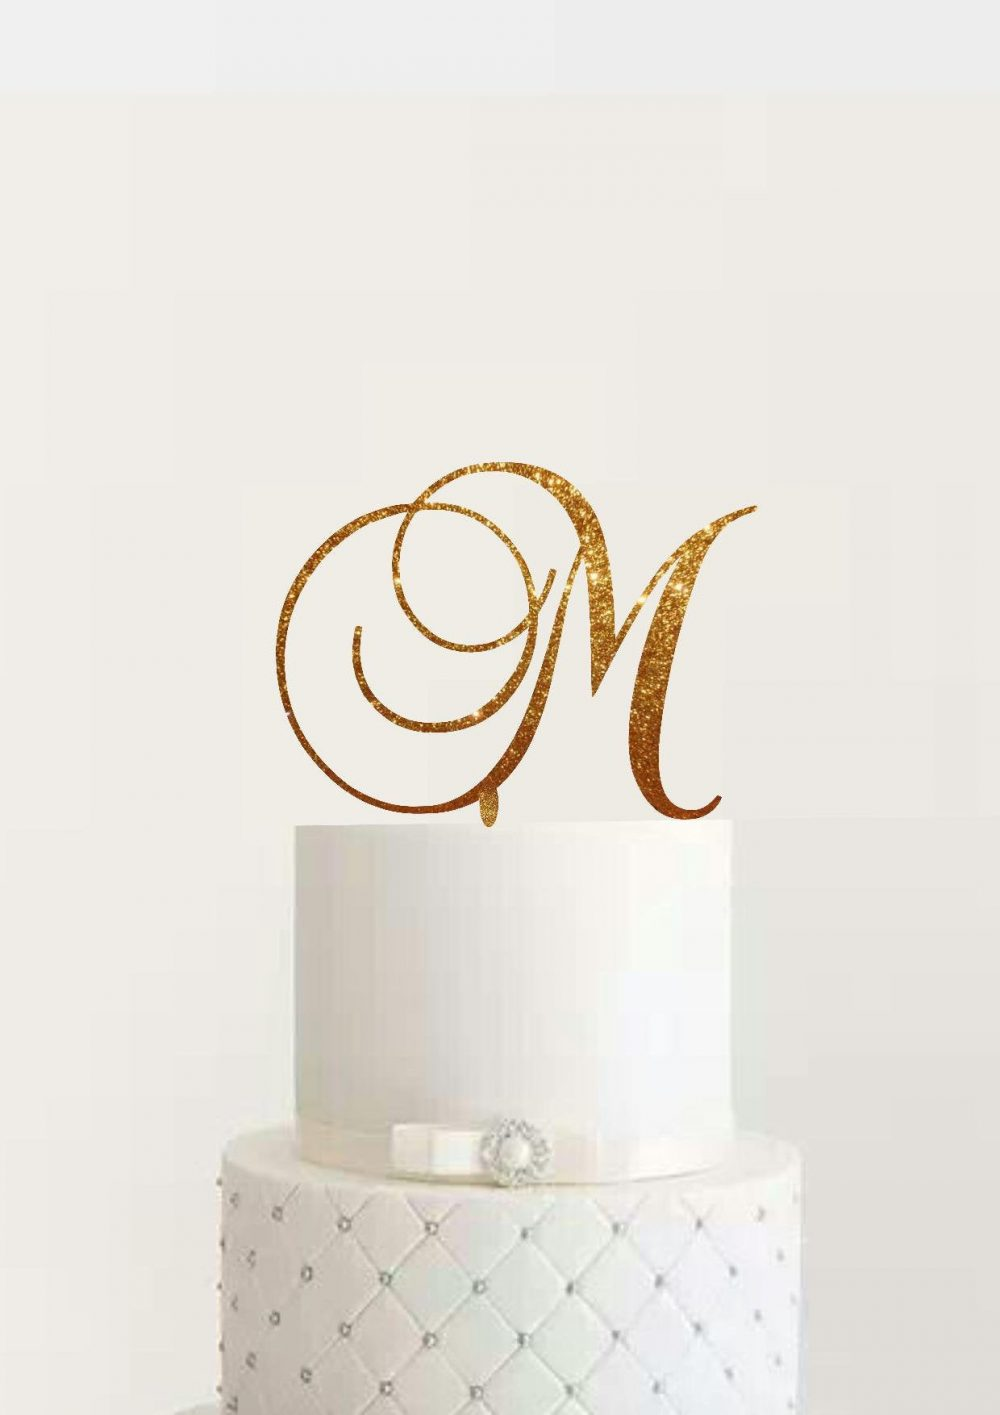 Elegance Wedding Monogram Cake Topper Custom Initial Letter Rose Gold Silver Glitter Unique Decoration Bridal Shower Engagement Anniversary